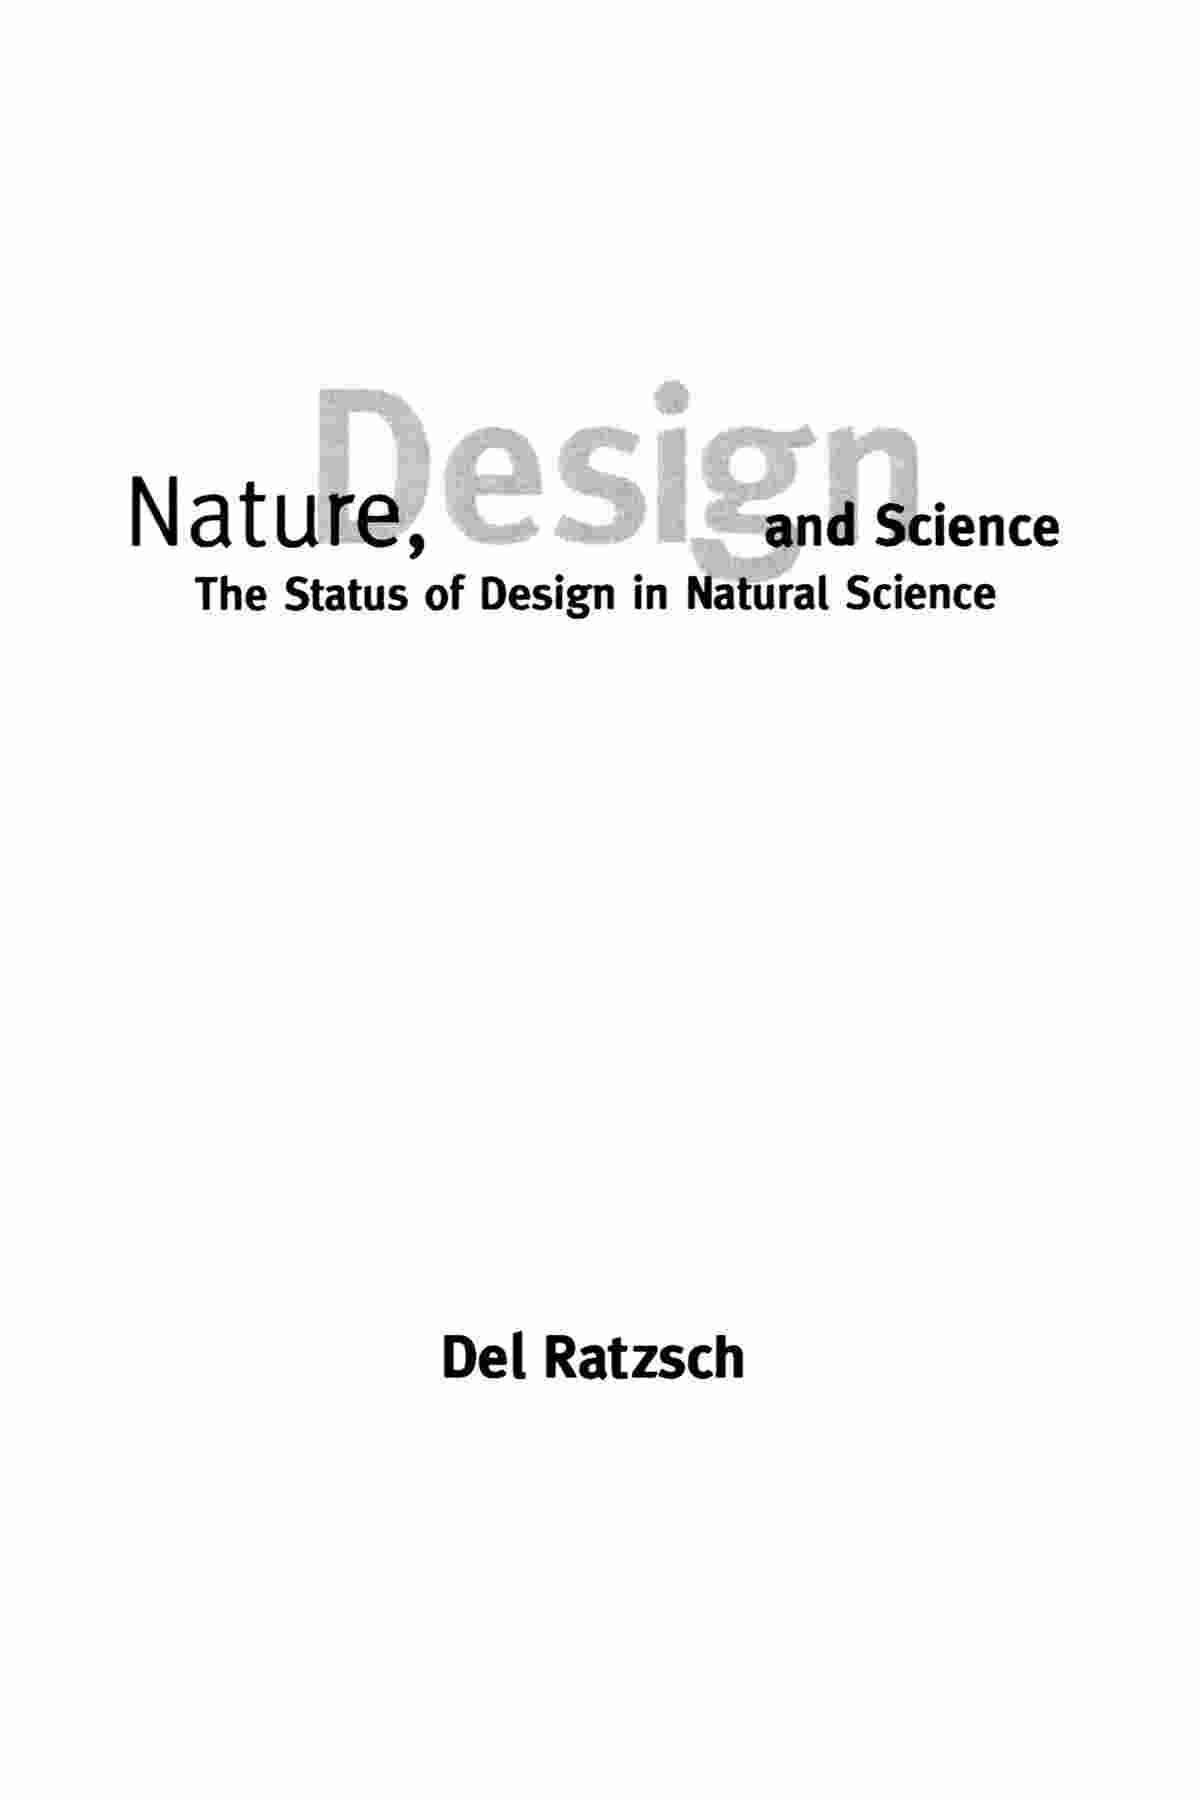 NatureDesignScience